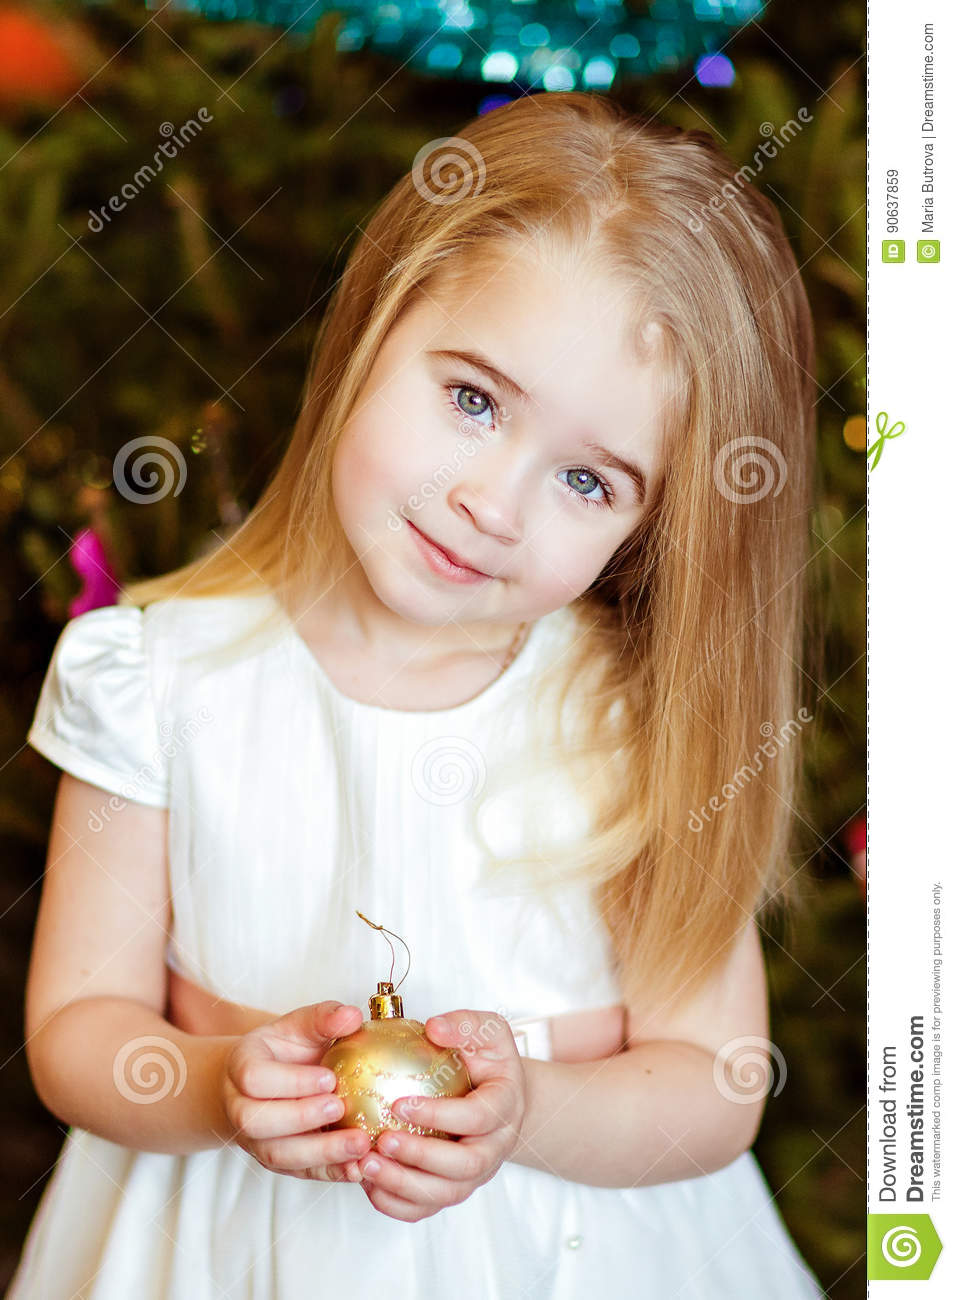 portrait of a beautiful cute girls baby blonde with straight hai